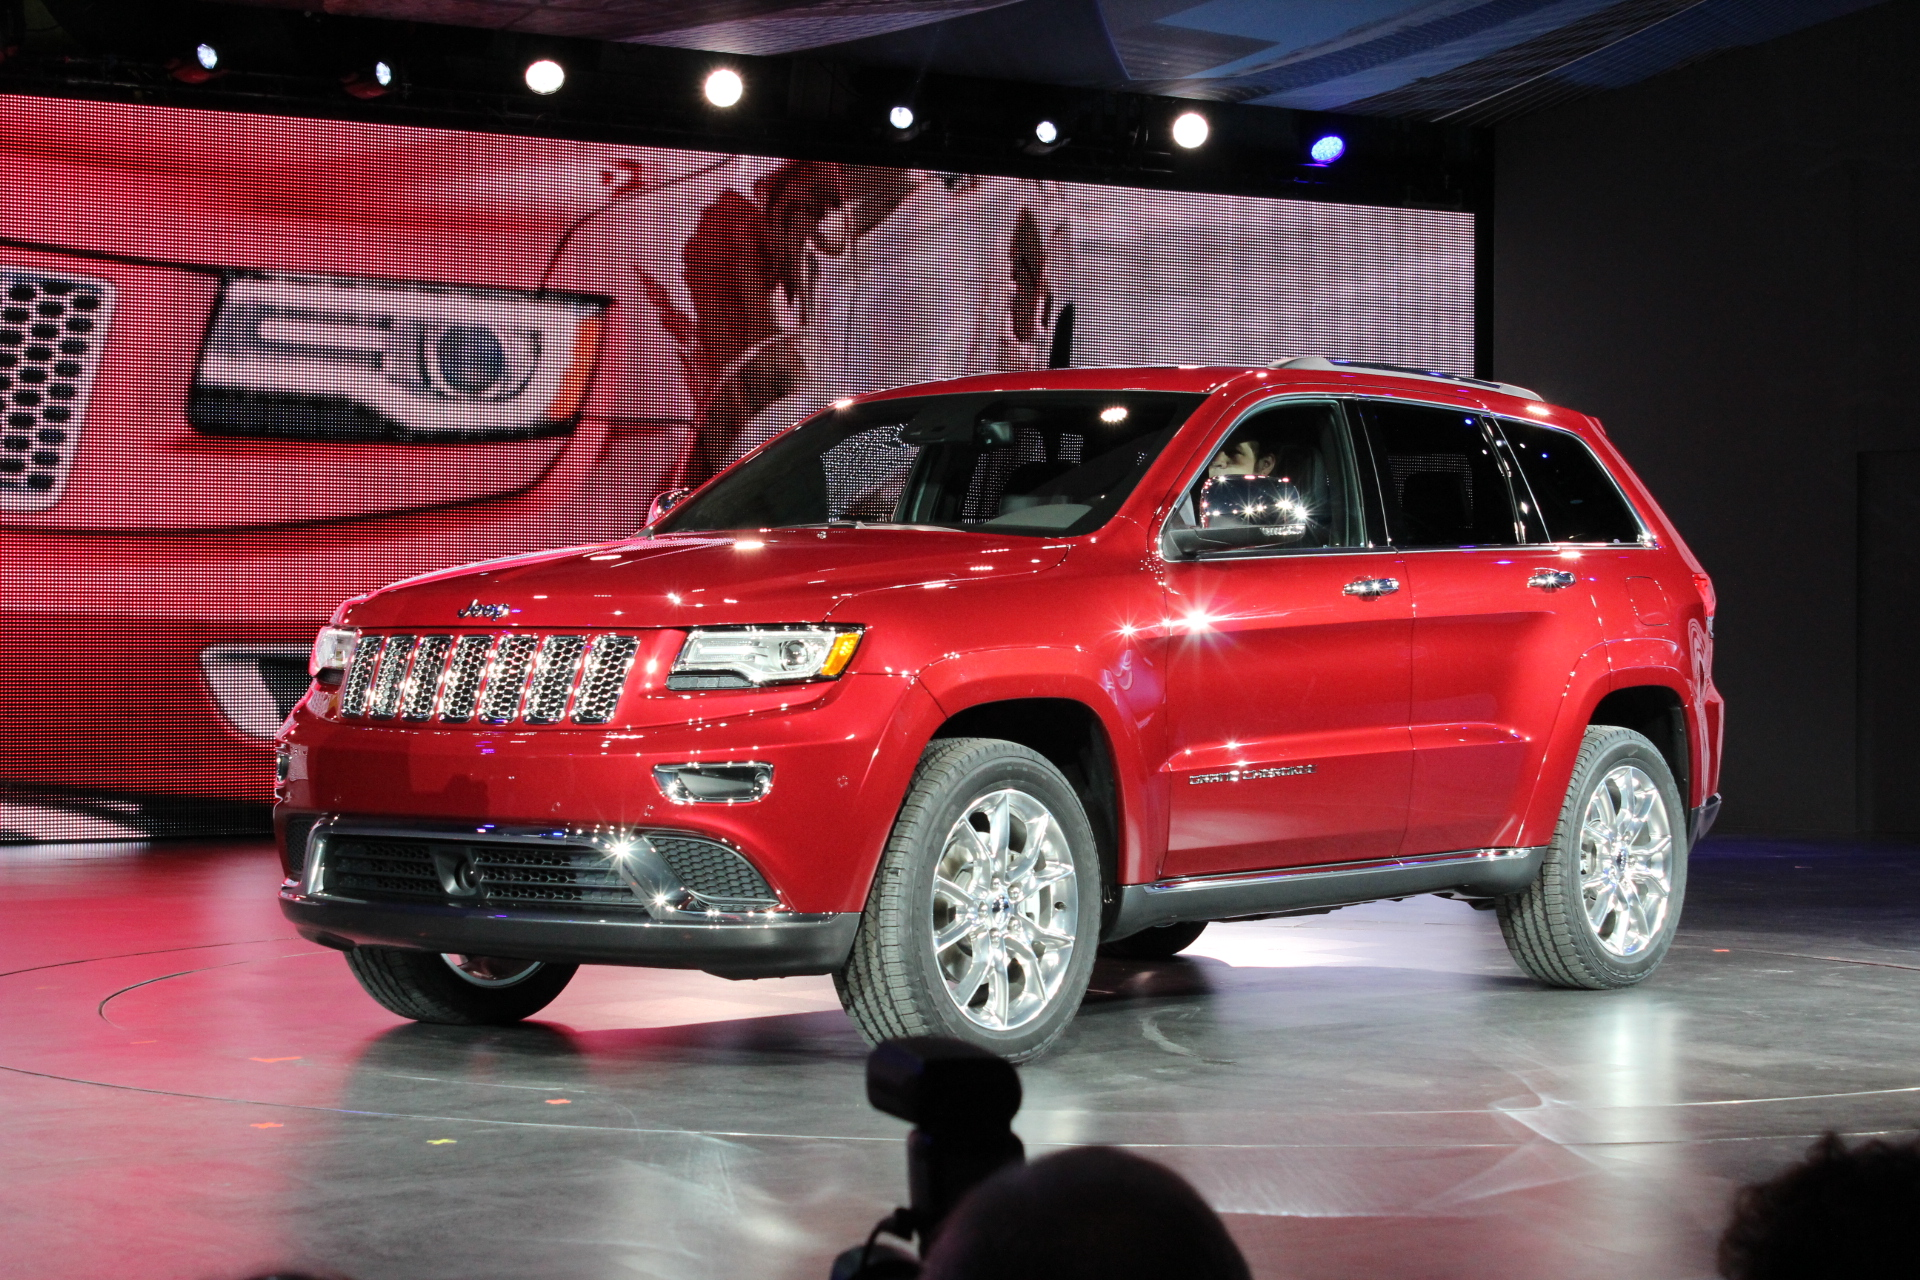 2014 jeep grand cherokee ecodiesel live photos from detroit auto show. Black Bedroom Furniture Sets. Home Design Ideas